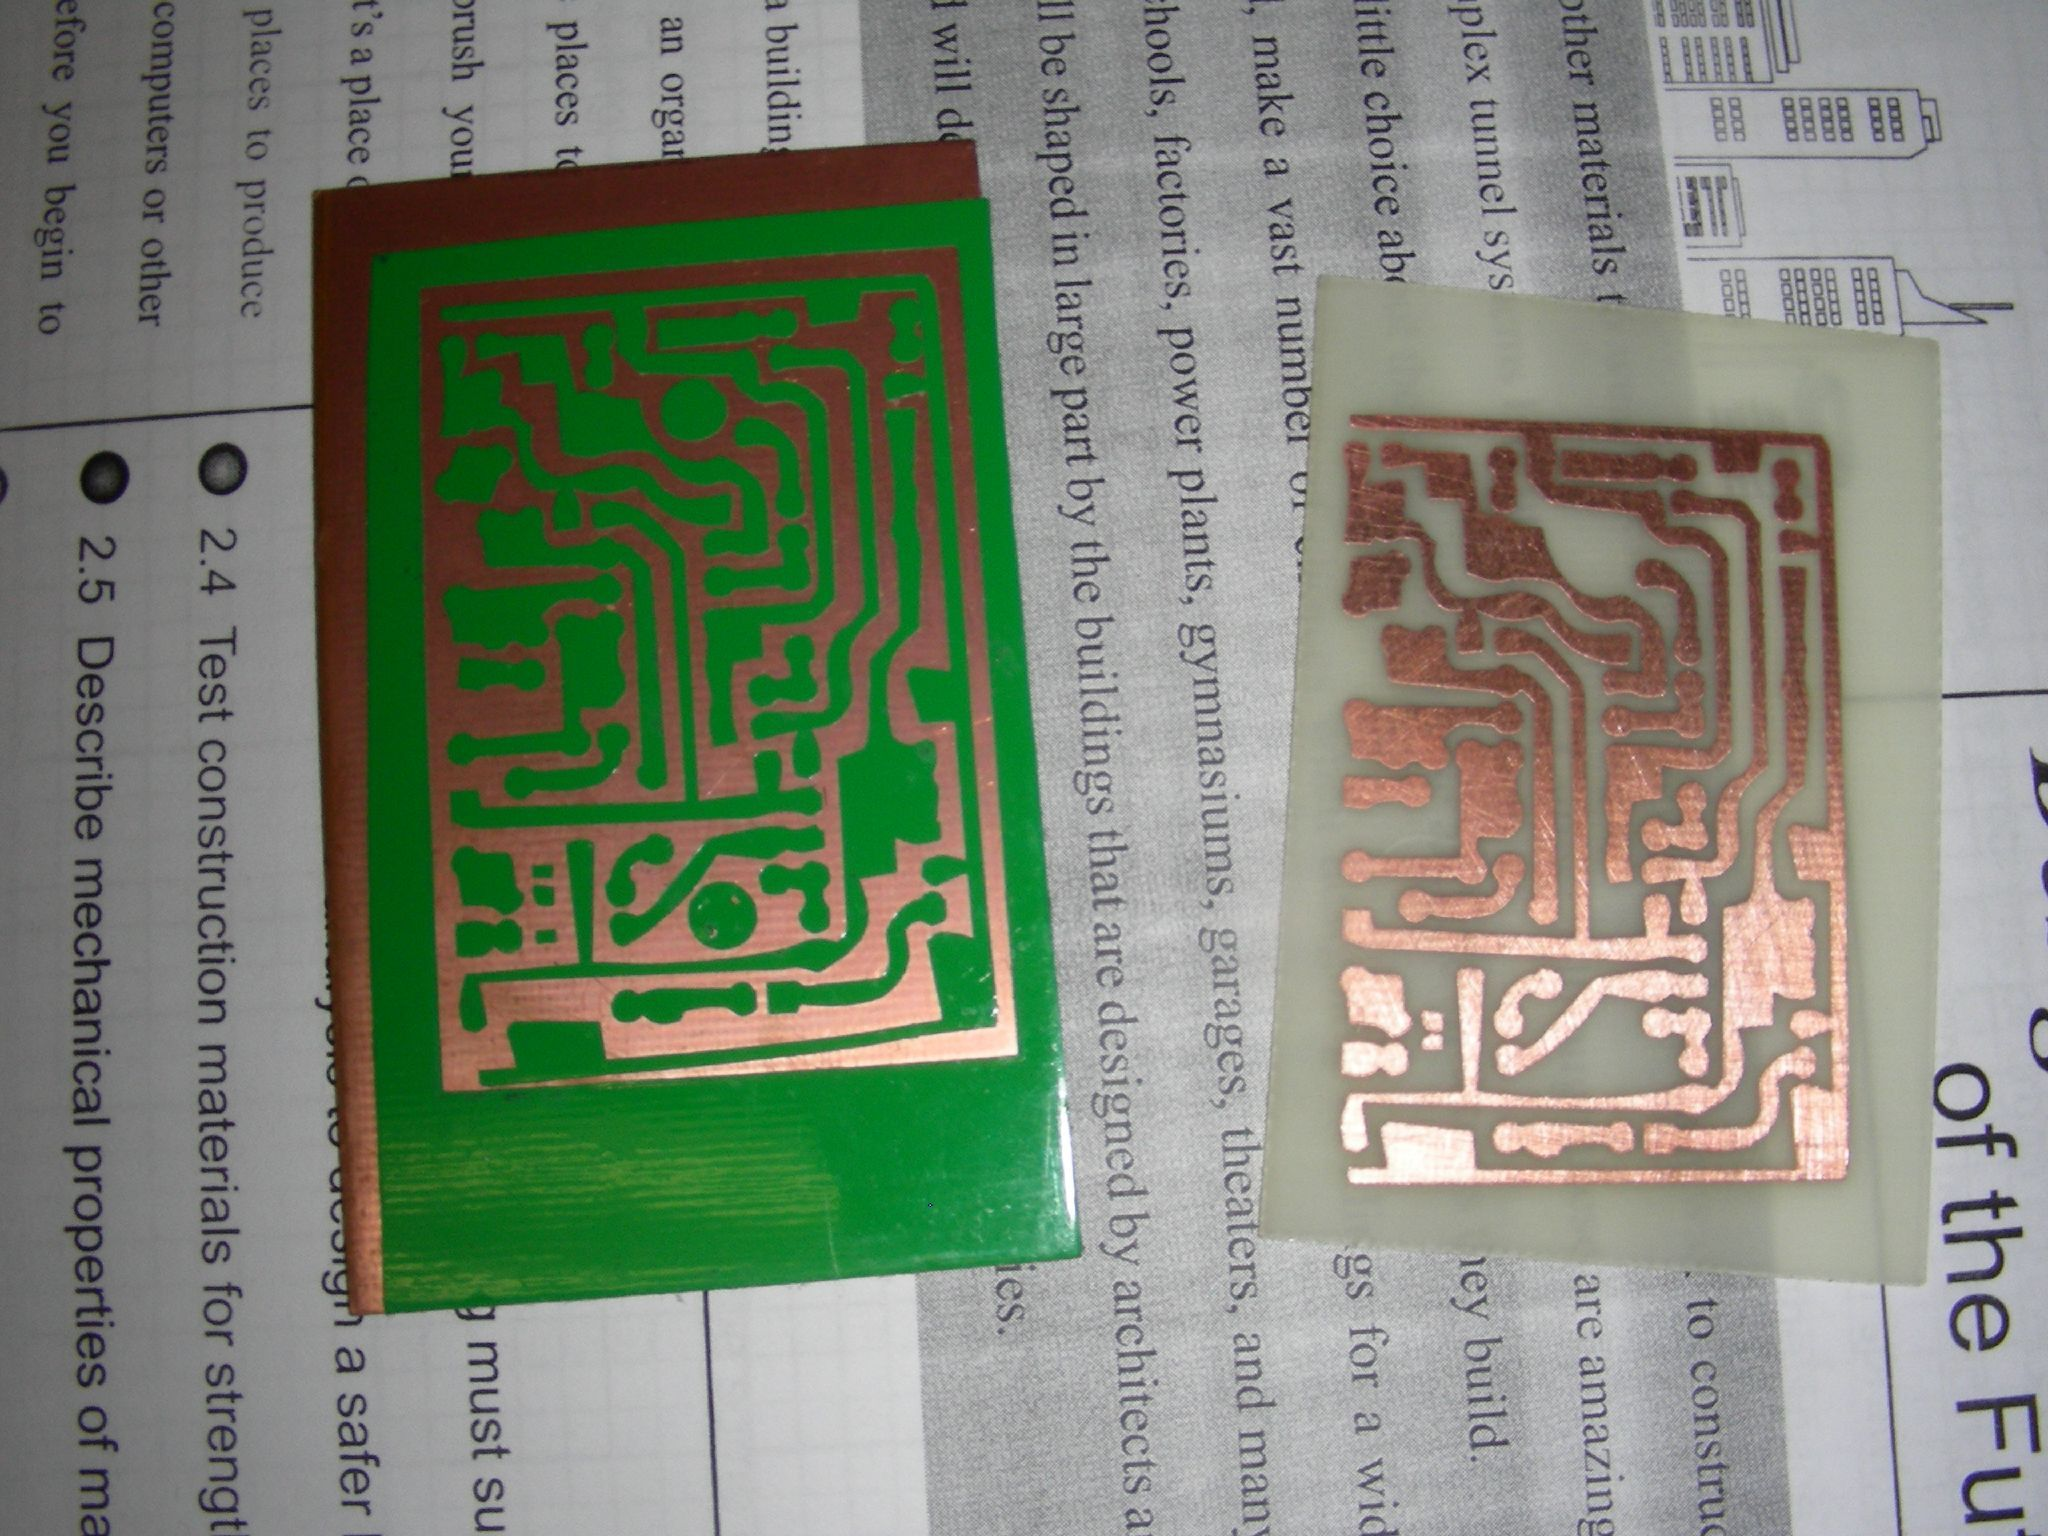 Vinyl Cut Pcb Resist Make Circuit Board After Etching Process